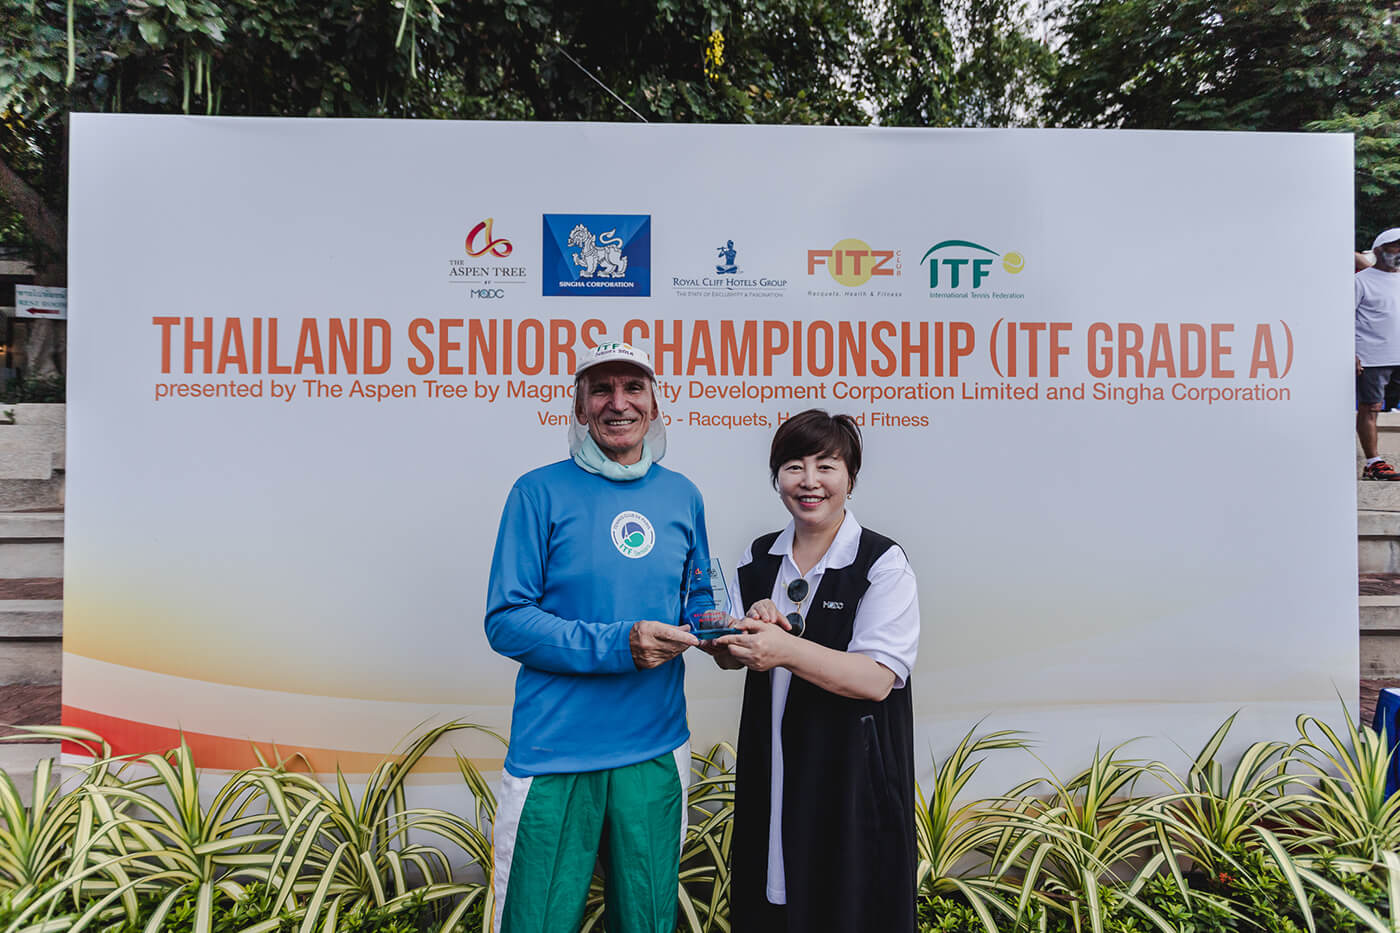 The Aspen Tree highlights Thailand's appeal for older adults at ITF Championship seniors tennis tournament